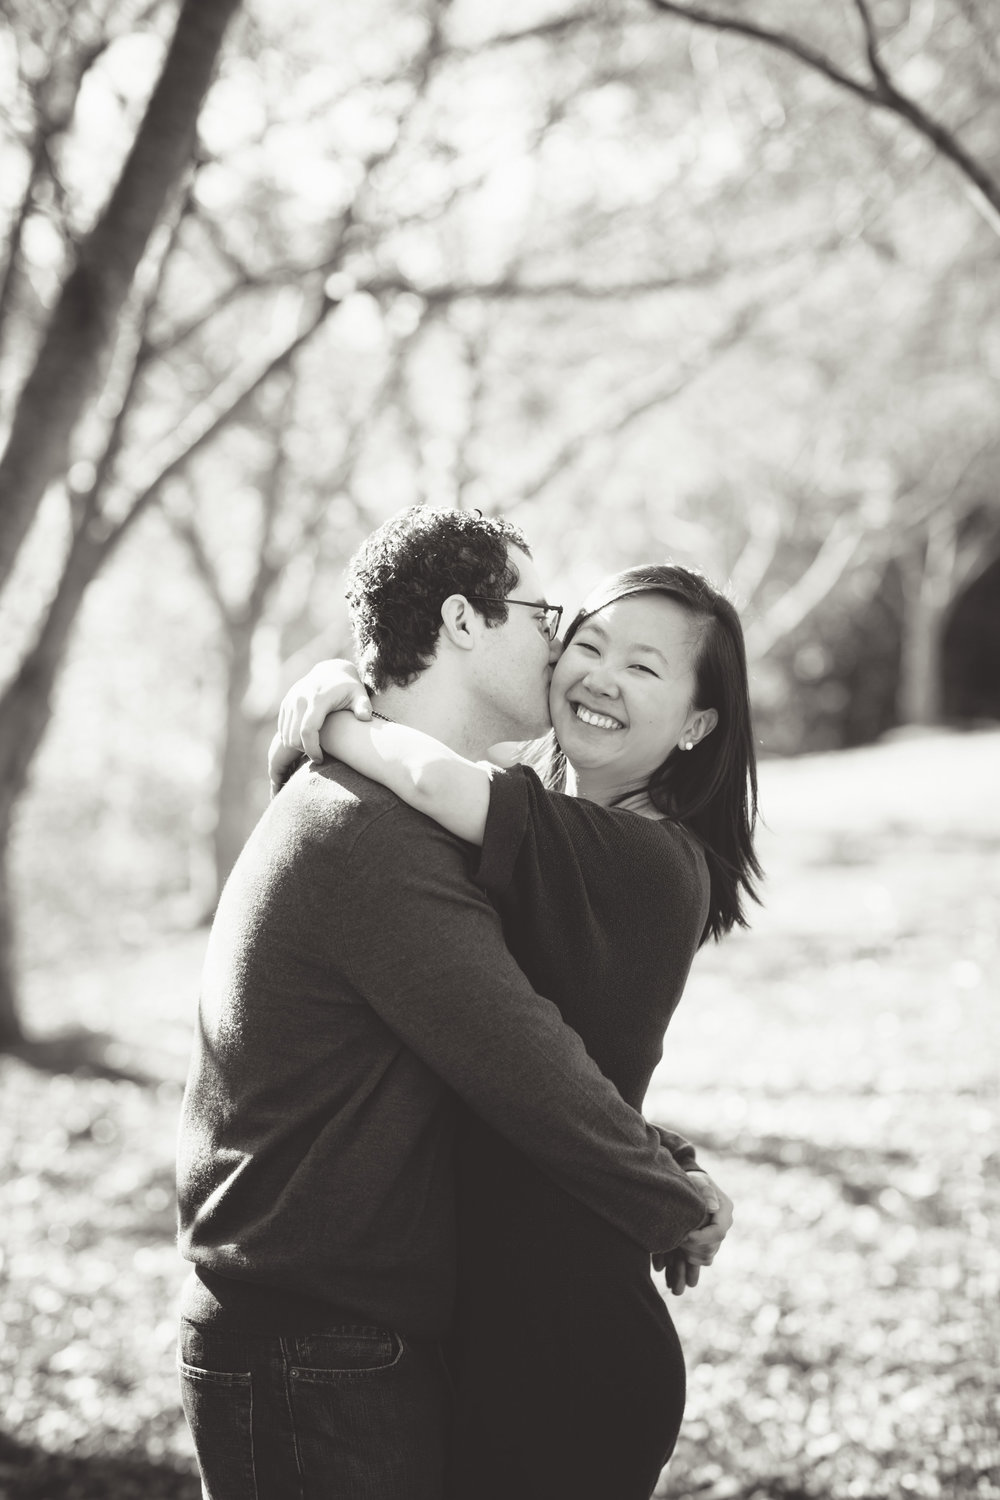 Engaged - Mia and Alex - Photo by Lauren Rosenau